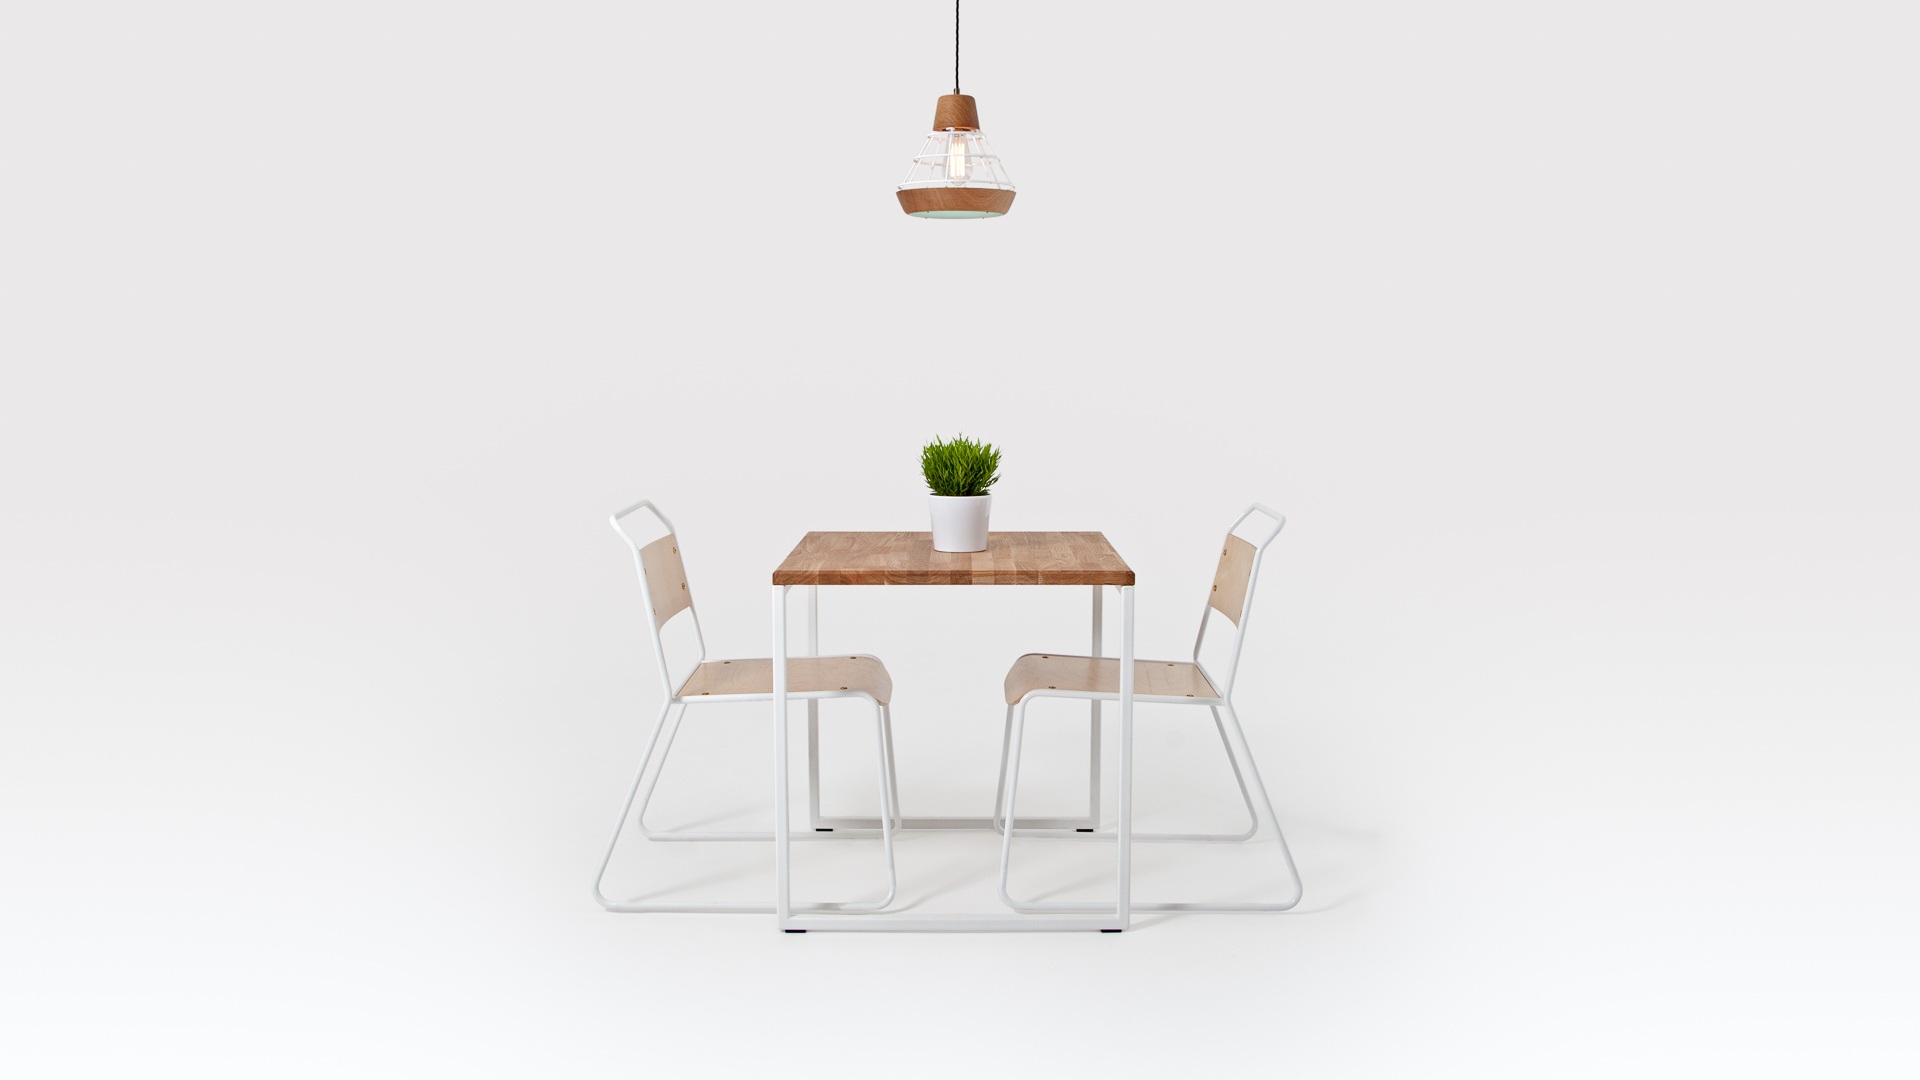 Stackable Chairs Cafe Chairs Cafe Furniture Restaurant